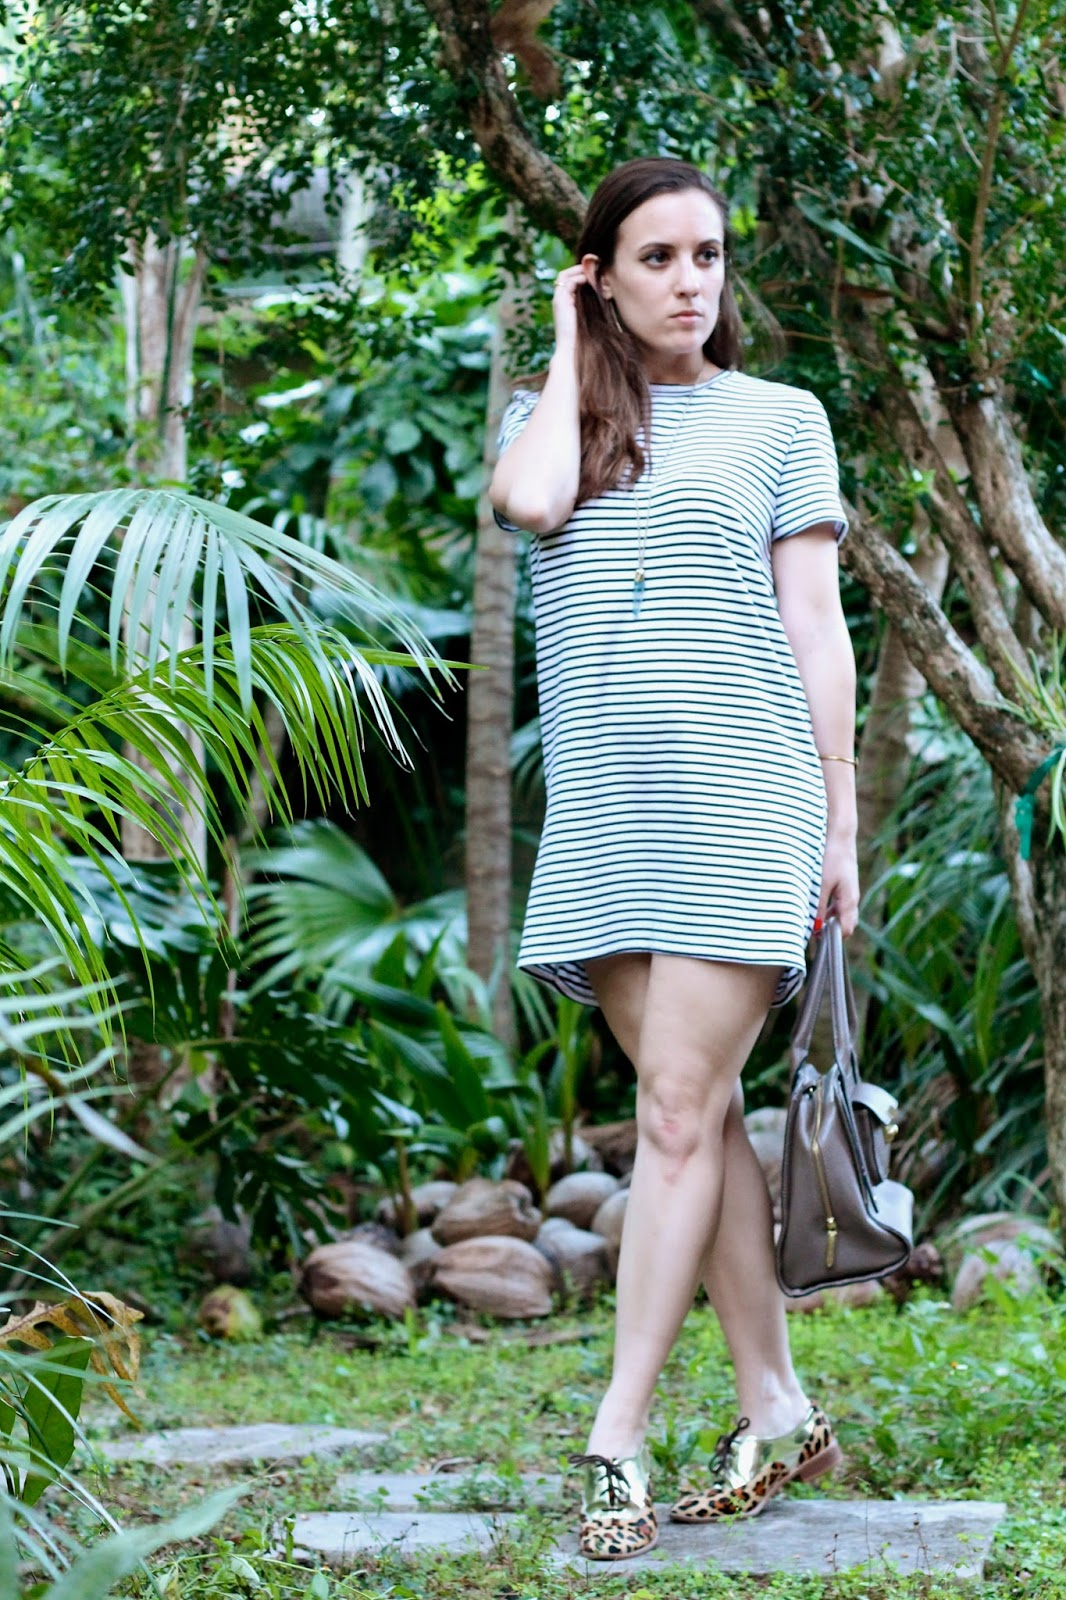 forever 21, Anthropologie, 3.1 Phillip Lim for Target, The HiRode, Plum Flower Creations, style blog, fashion blog, Miami fashion blogger, Miami style, outfit ideas, must-haves, fblogger, ootd